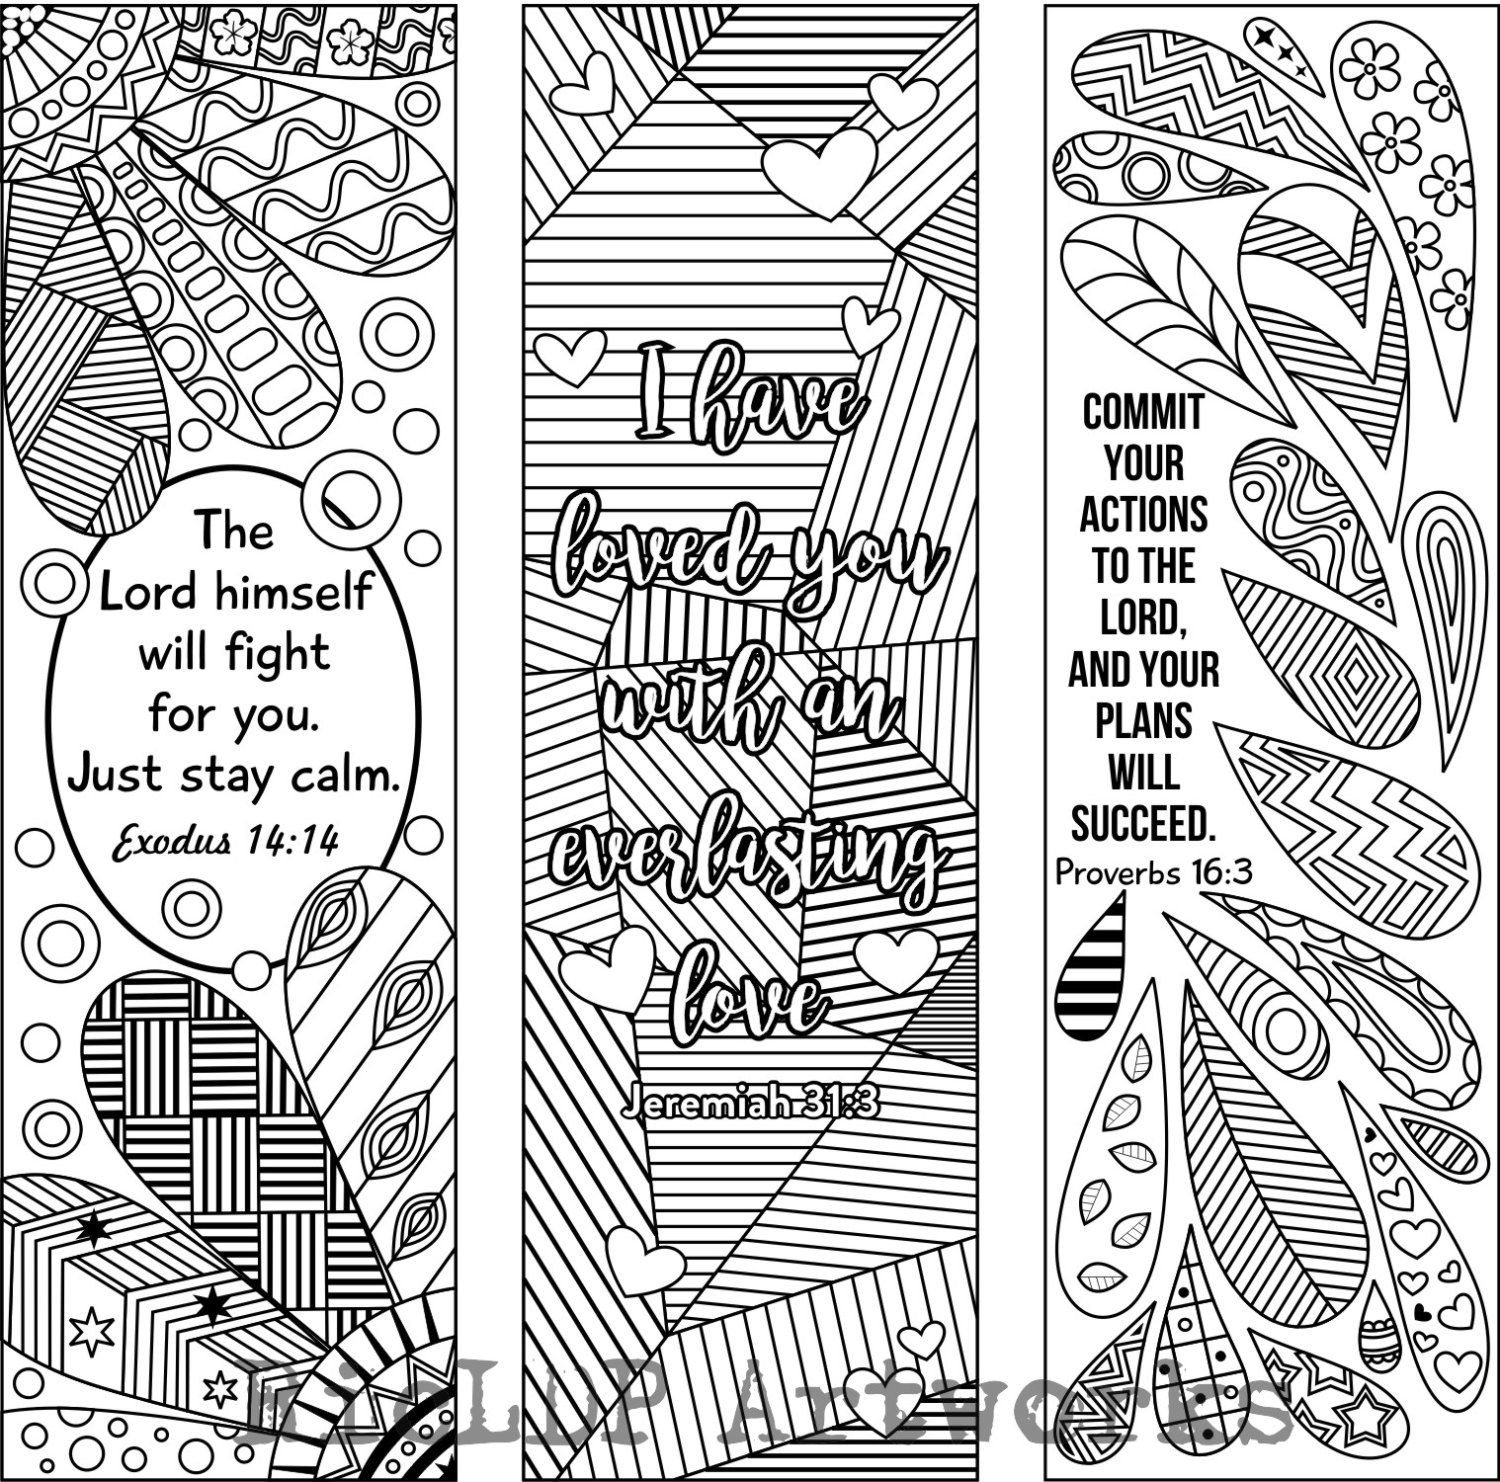 Religious bookmarks to color - 6 Bible Verse Coloring Bookmarks Plus 3 Designs By Ricldpartworks